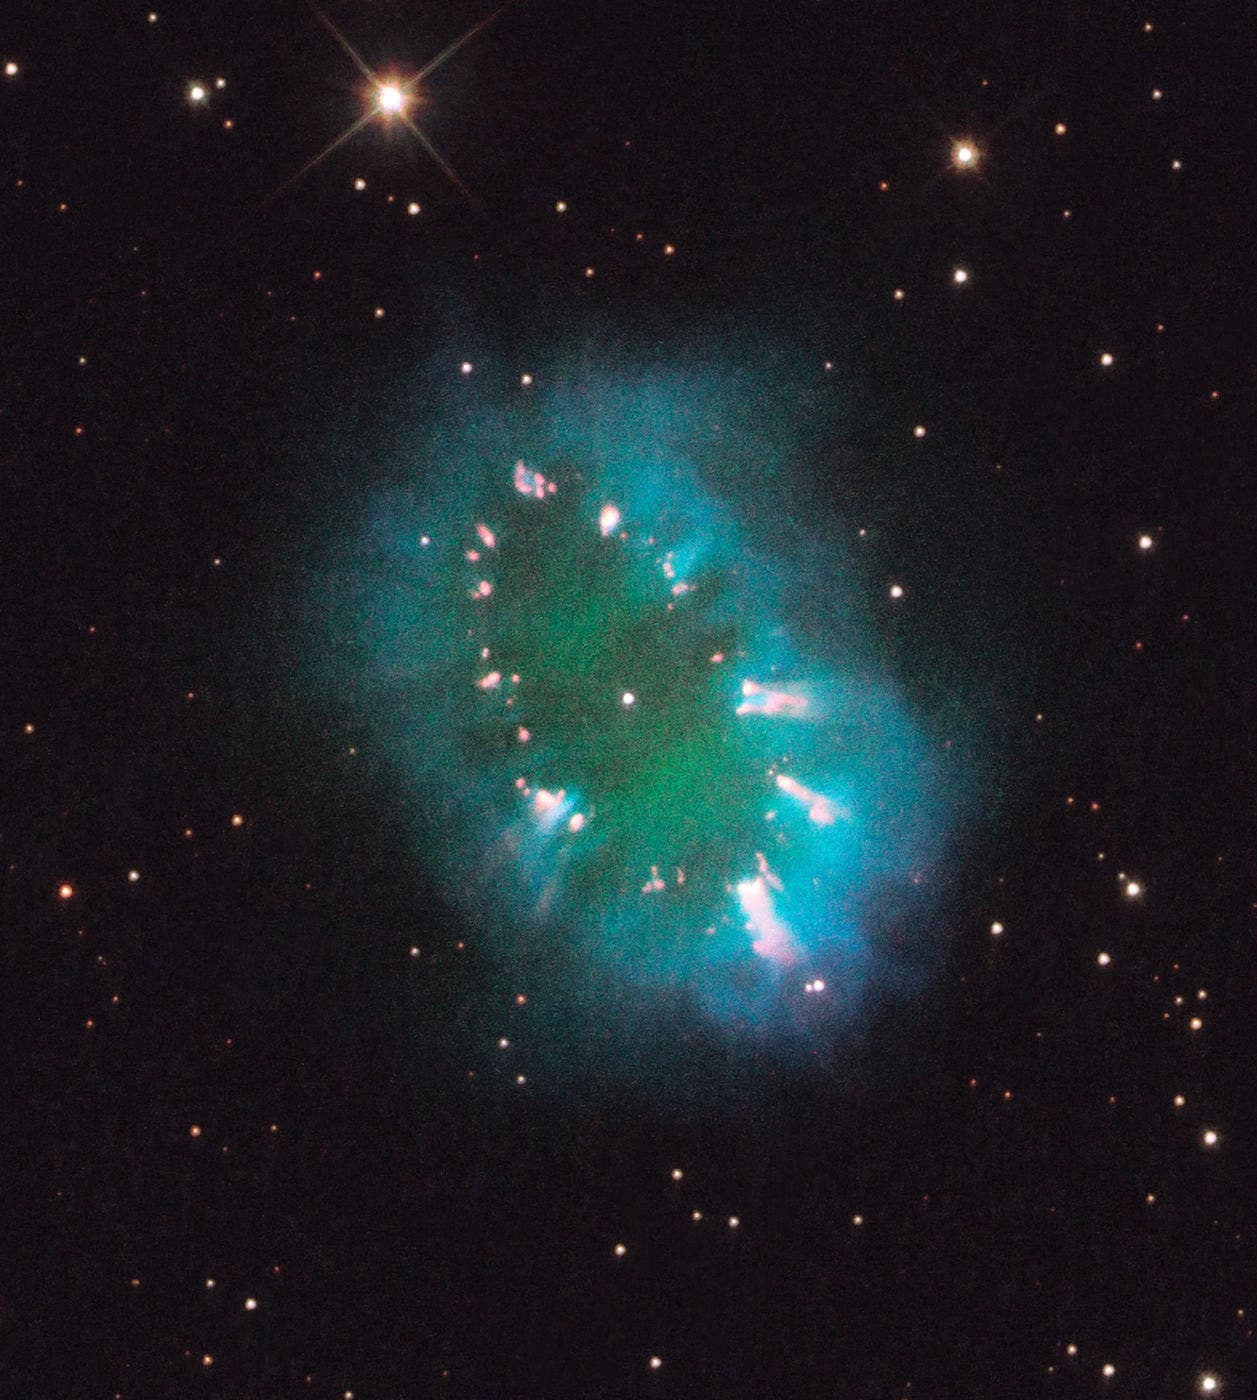 Necklace-nebula-hubble-photo